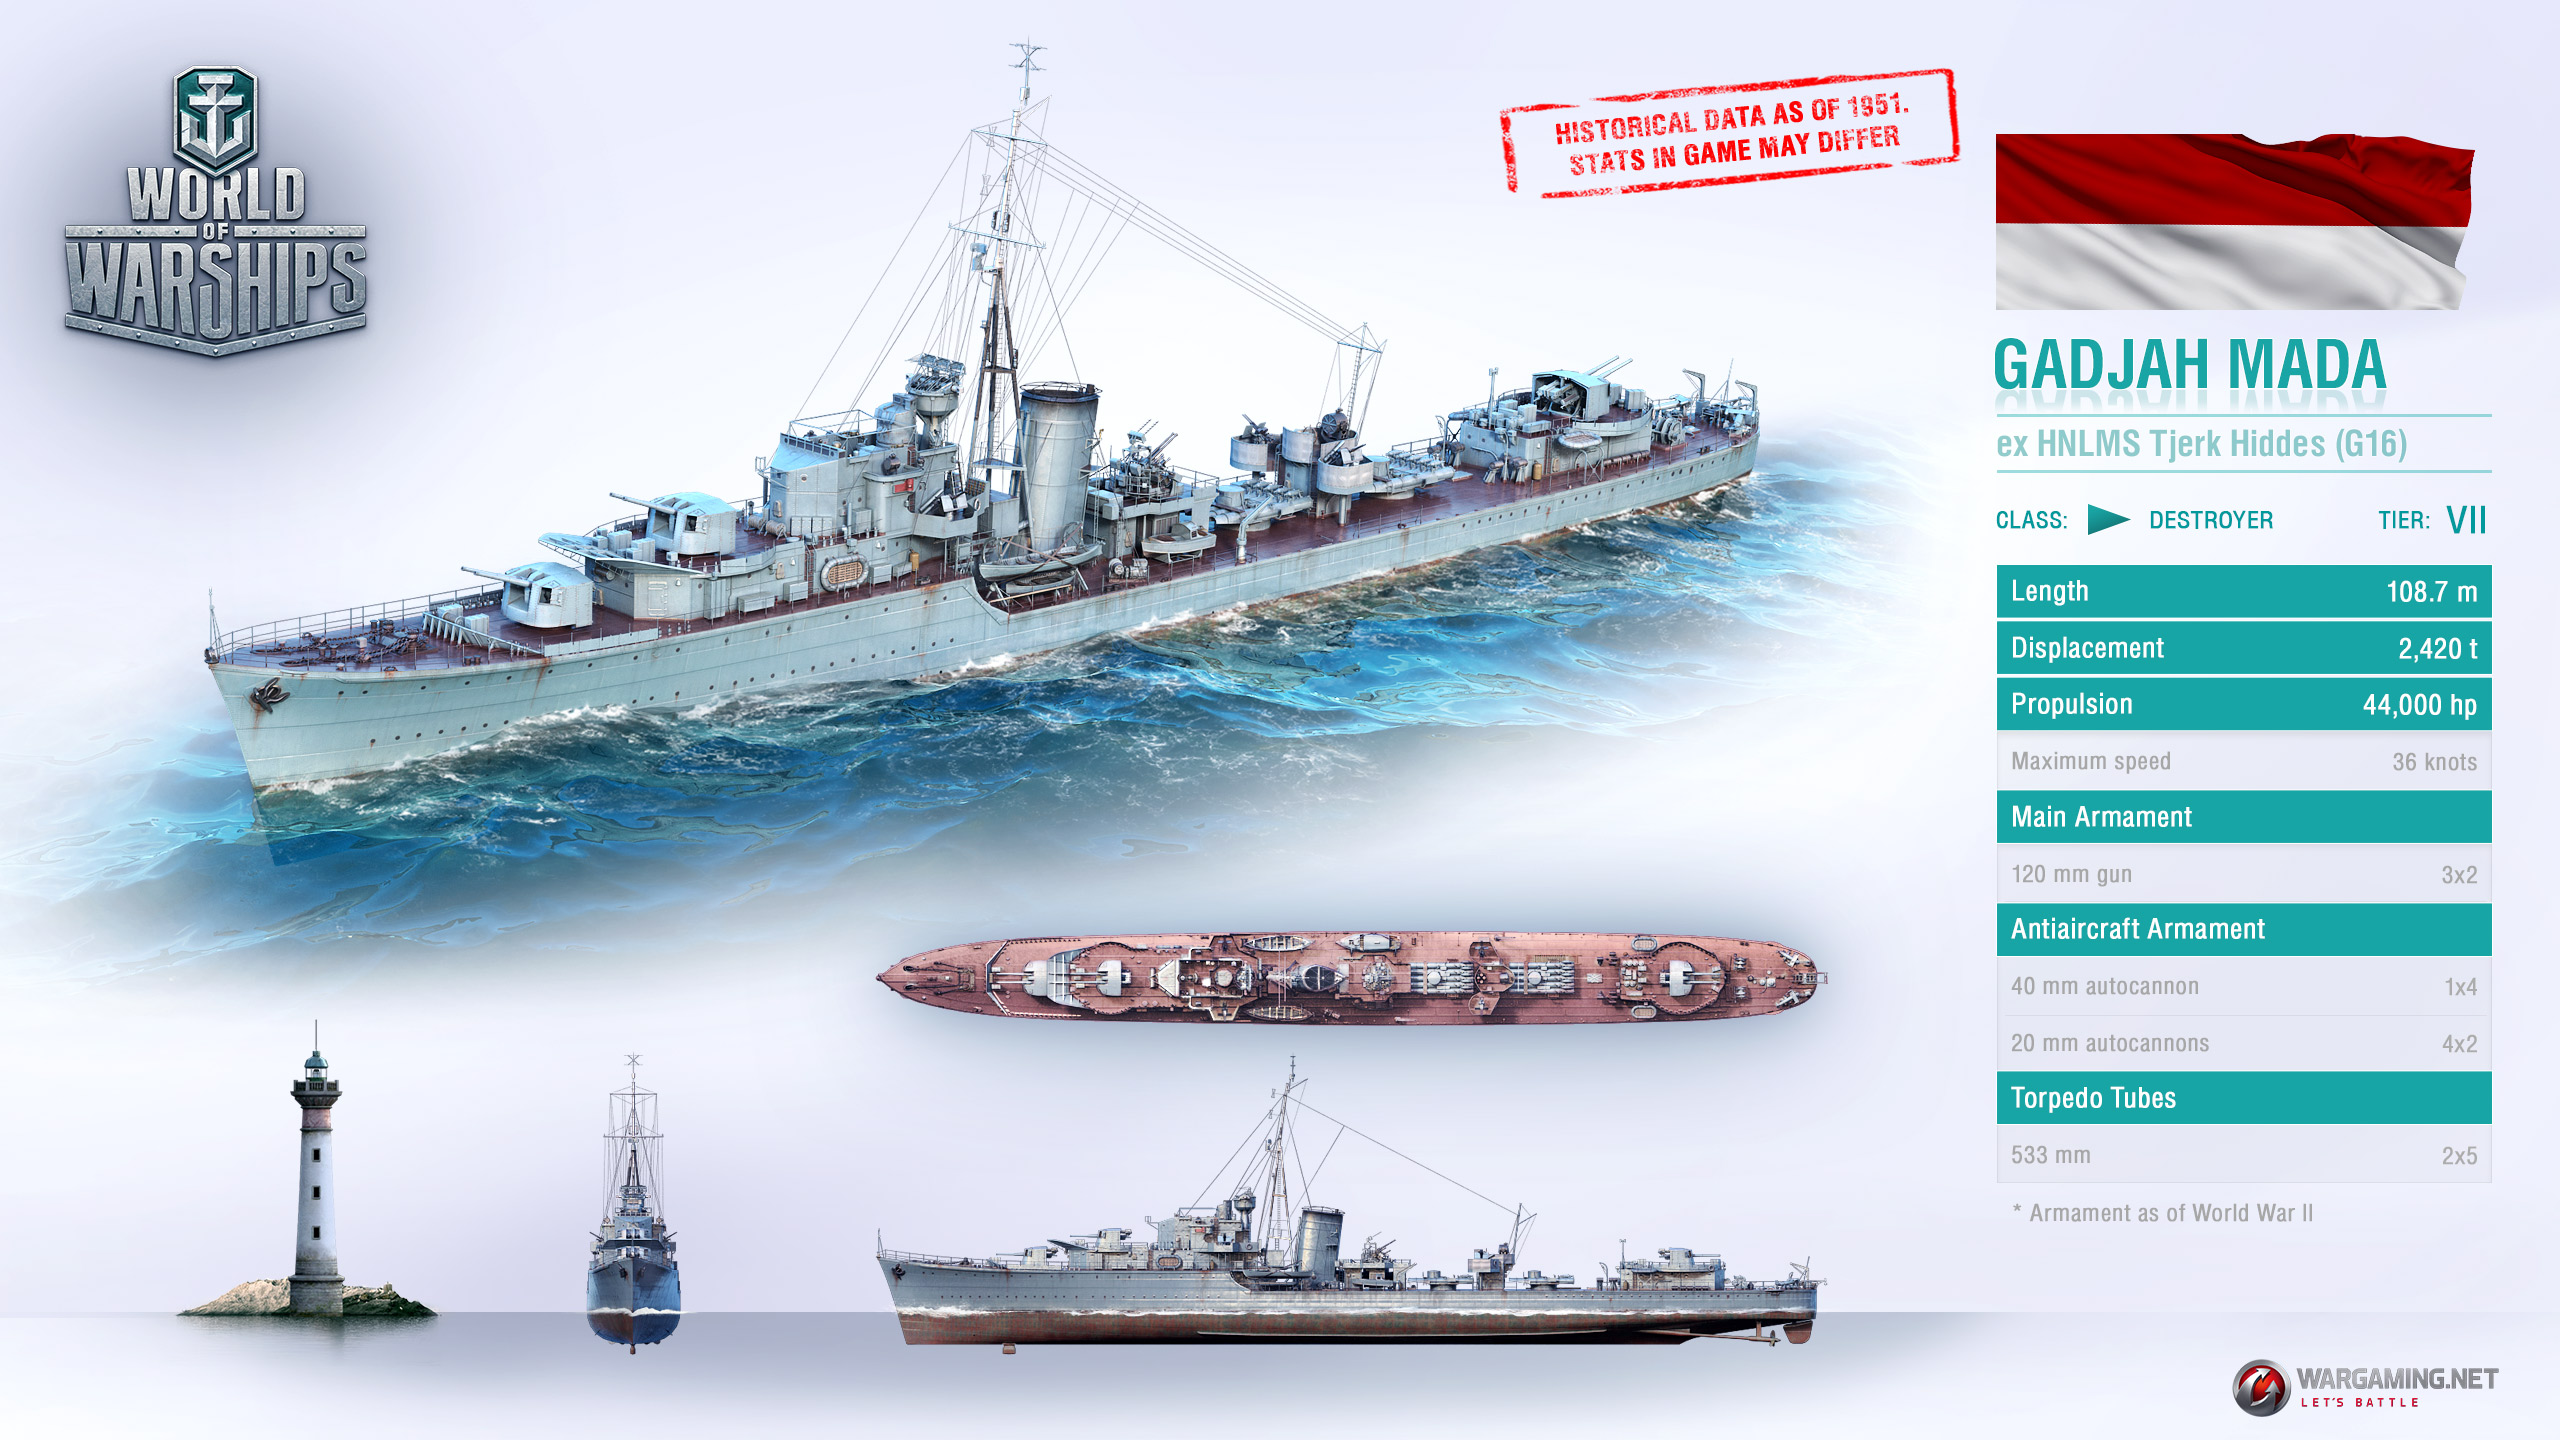 Wallpaper Hd Mu World Of Warships Pan Asia Destroyers Pictures